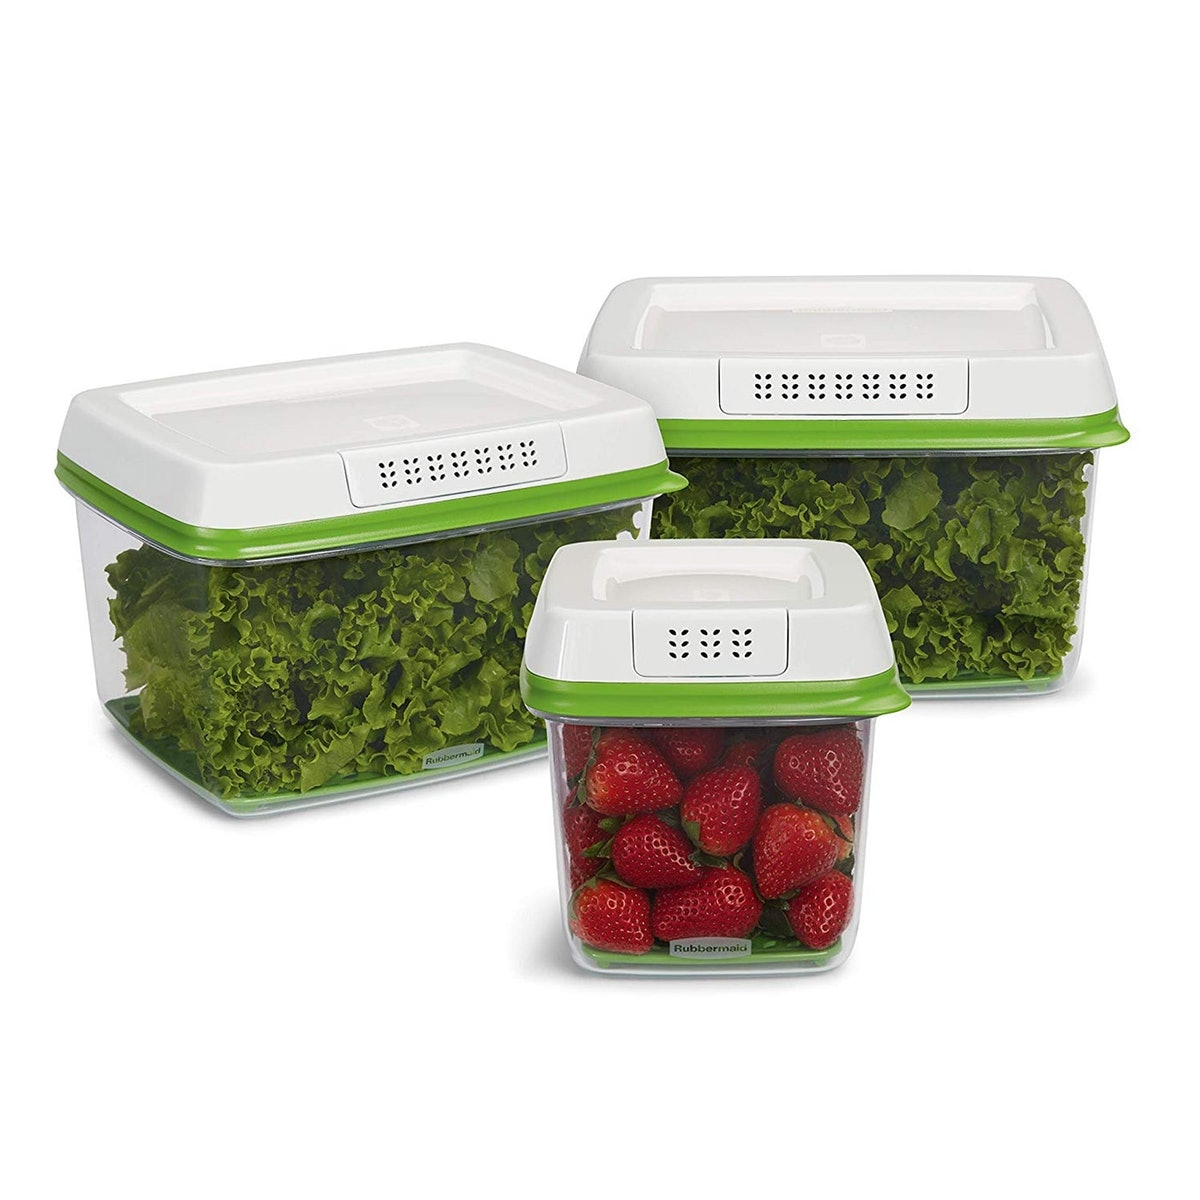 Rubbermaid Produce Saver Containers (3-Piece Set